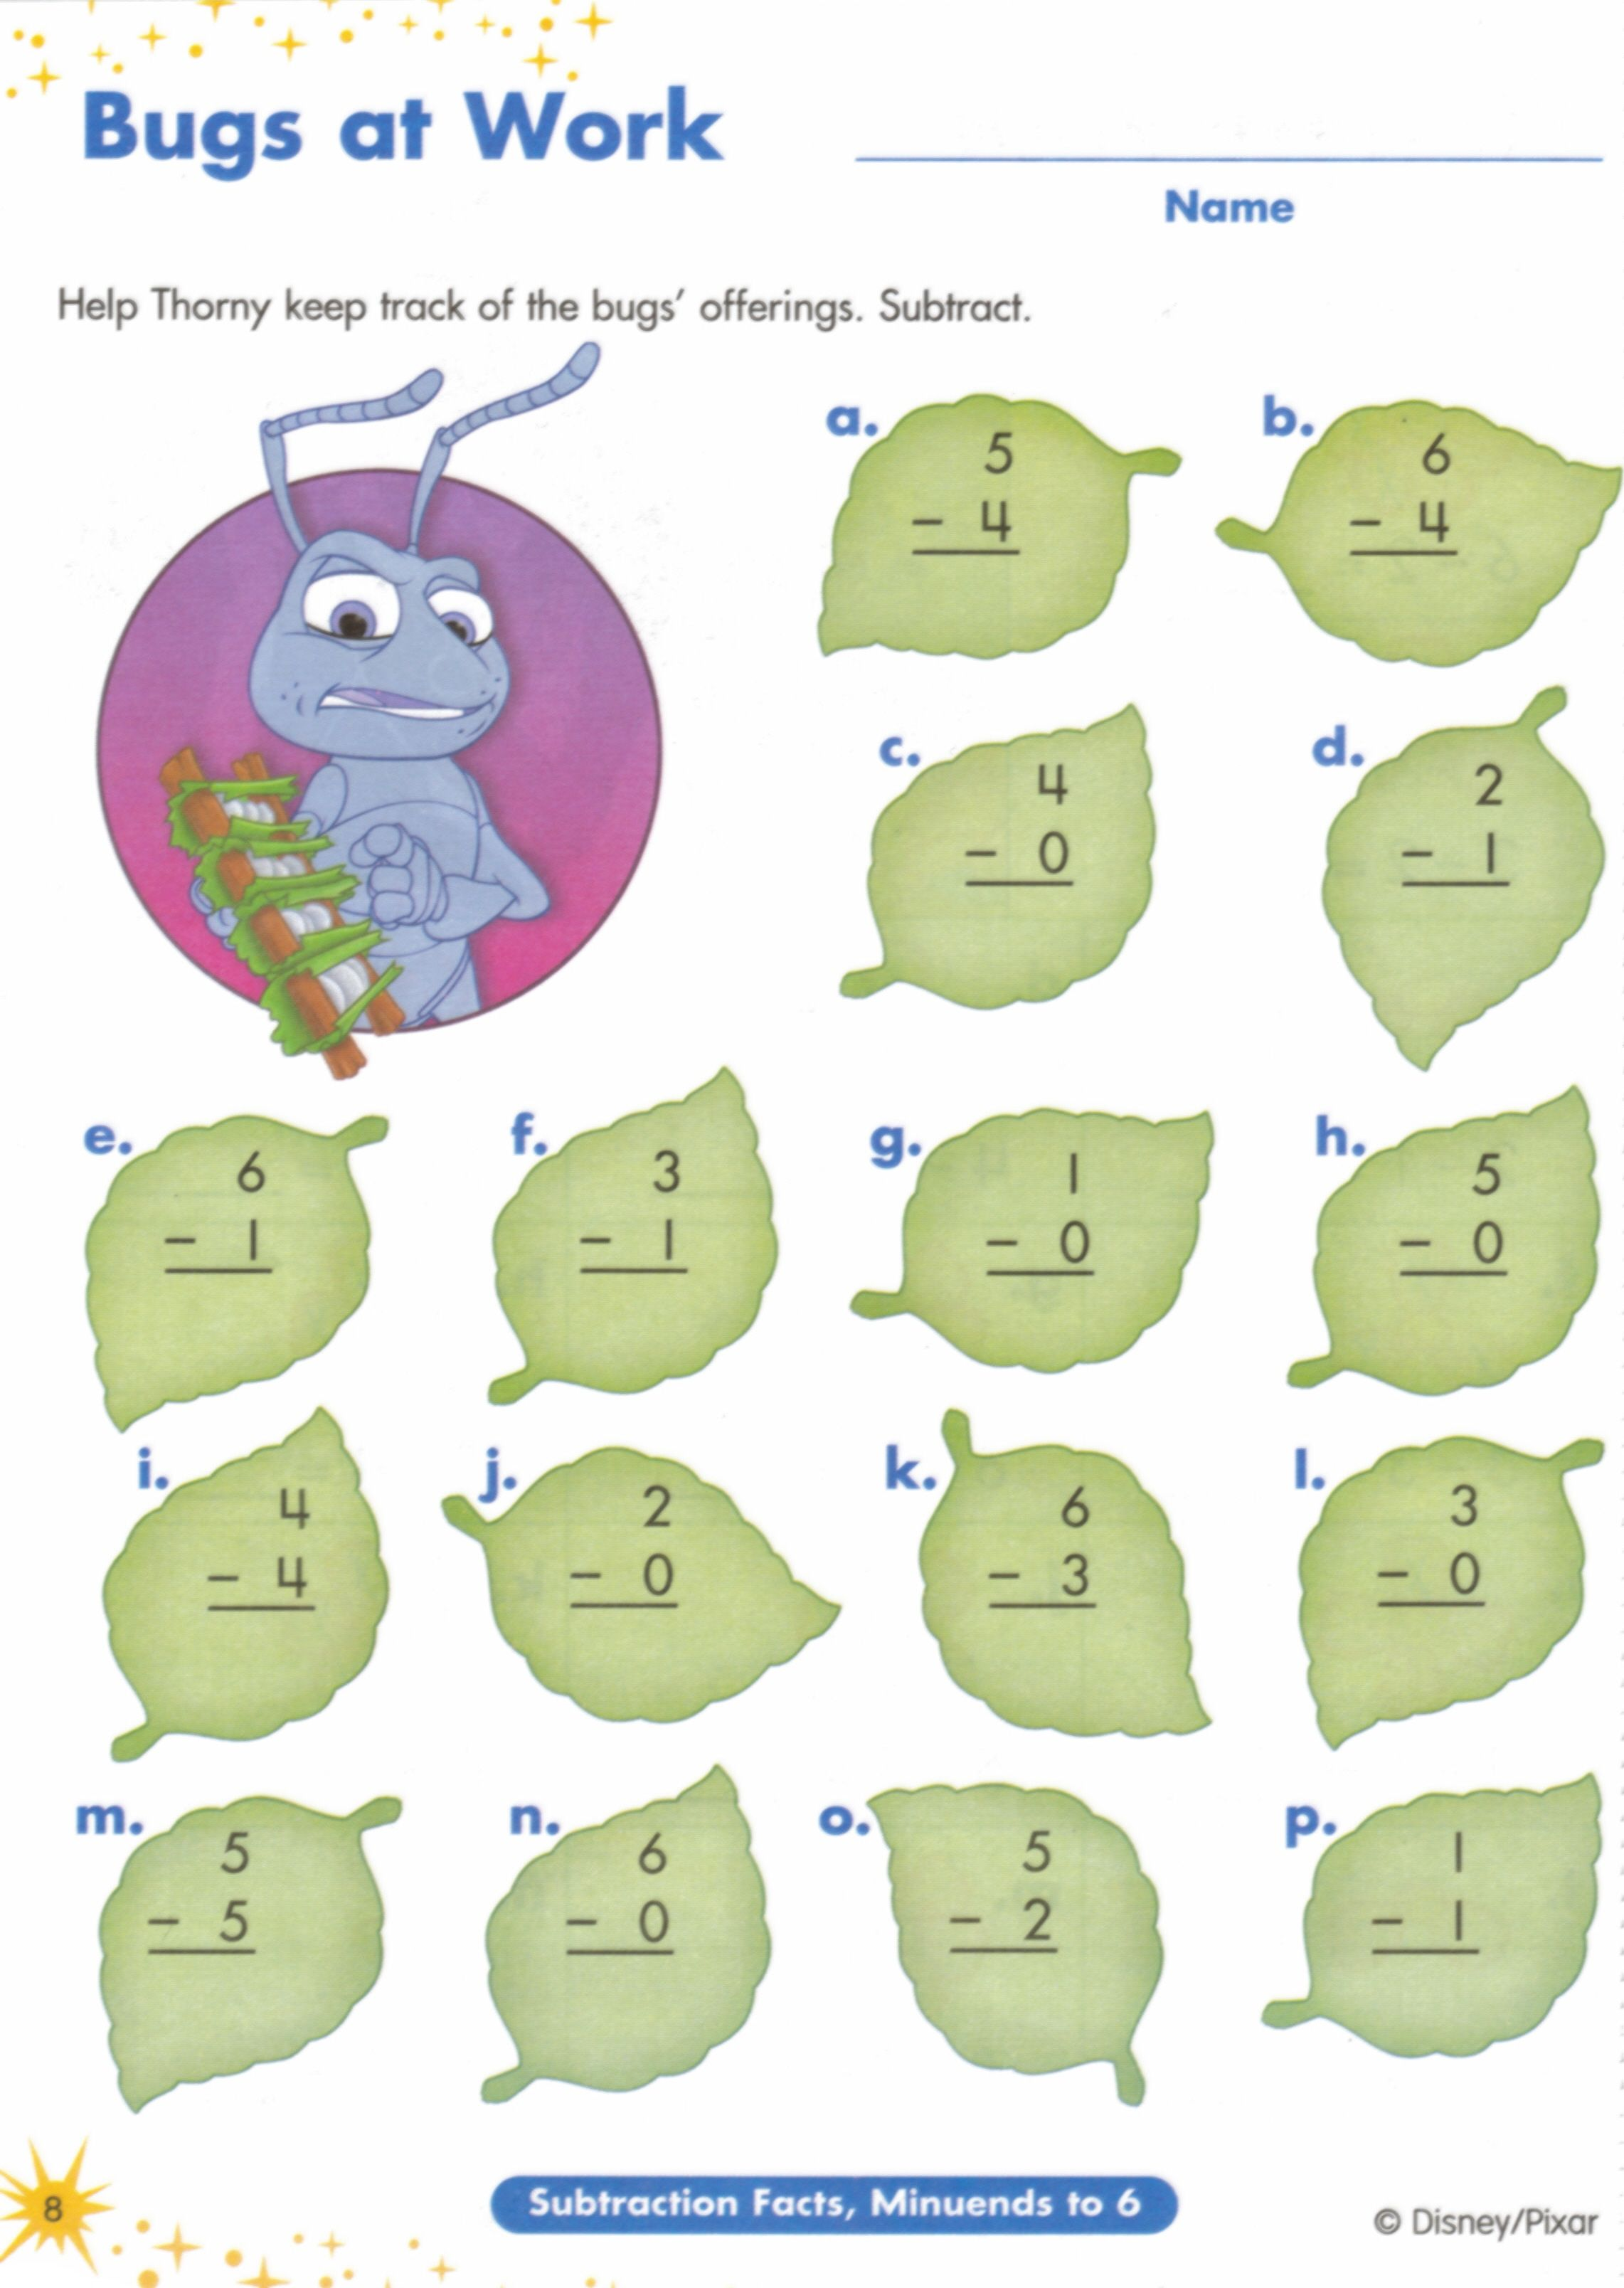 Proatmealus  Pleasant  Images About Worksheets On Pinterest  Fun Facts For Kids  With Exquisite  Images About Worksheets On Pinterest  Fun Facts For Kids Earth Day Worksheets And Jungles With Amazing Matching Worksheet Also Bill Nye Chemical Reactions Worksheet Answers In Addition Metric Conversion Worksheets And Types Of Energy Worksheet As Well As Geometric Sequence And Series Worksheet Additionally Function Tables Worksheet From Pinterestcom With Proatmealus  Exquisite  Images About Worksheets On Pinterest  Fun Facts For Kids  With Amazing  Images About Worksheets On Pinterest  Fun Facts For Kids Earth Day Worksheets And Jungles And Pleasant Matching Worksheet Also Bill Nye Chemical Reactions Worksheet Answers In Addition Metric Conversion Worksheets From Pinterestcom